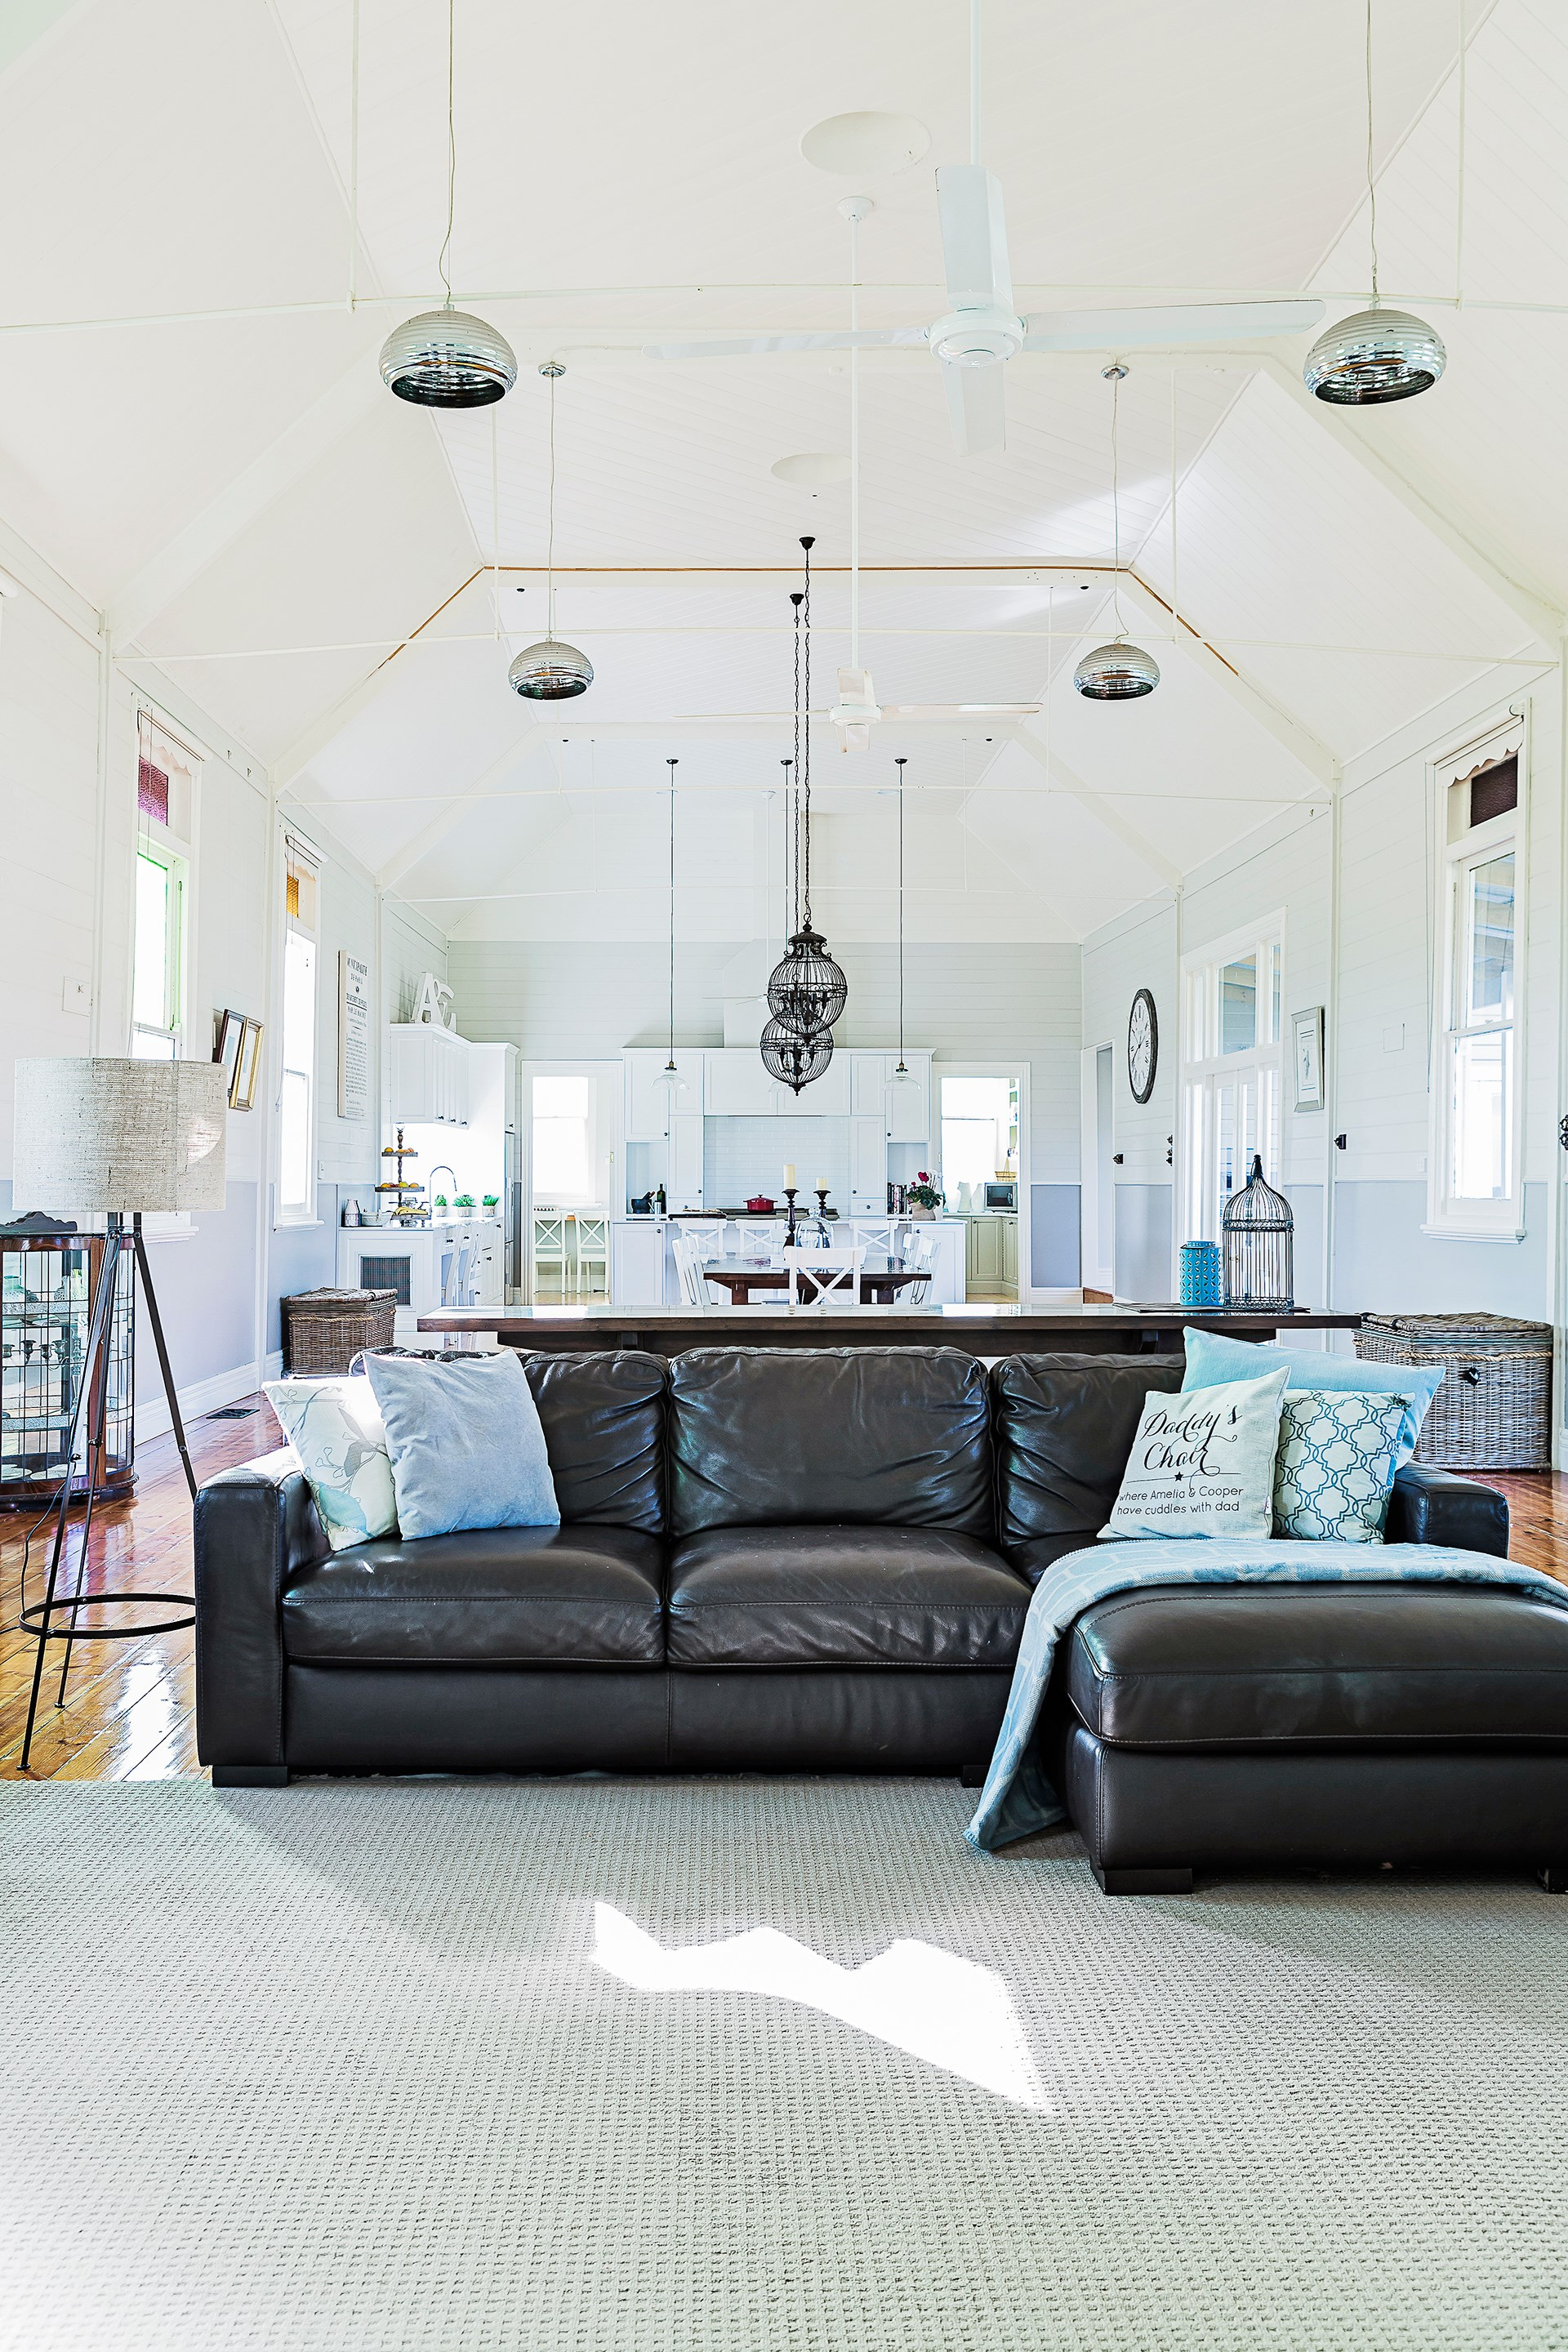 """This 125-year-old church hall was converted into a charming country-style home for a family of four based in Little River, a small village southwest of Melbourne. See more of this [clever church-hall conversion](http://www.homestolove.com.au/gallery-tash-and-pauls-church-hall-conversion-2006